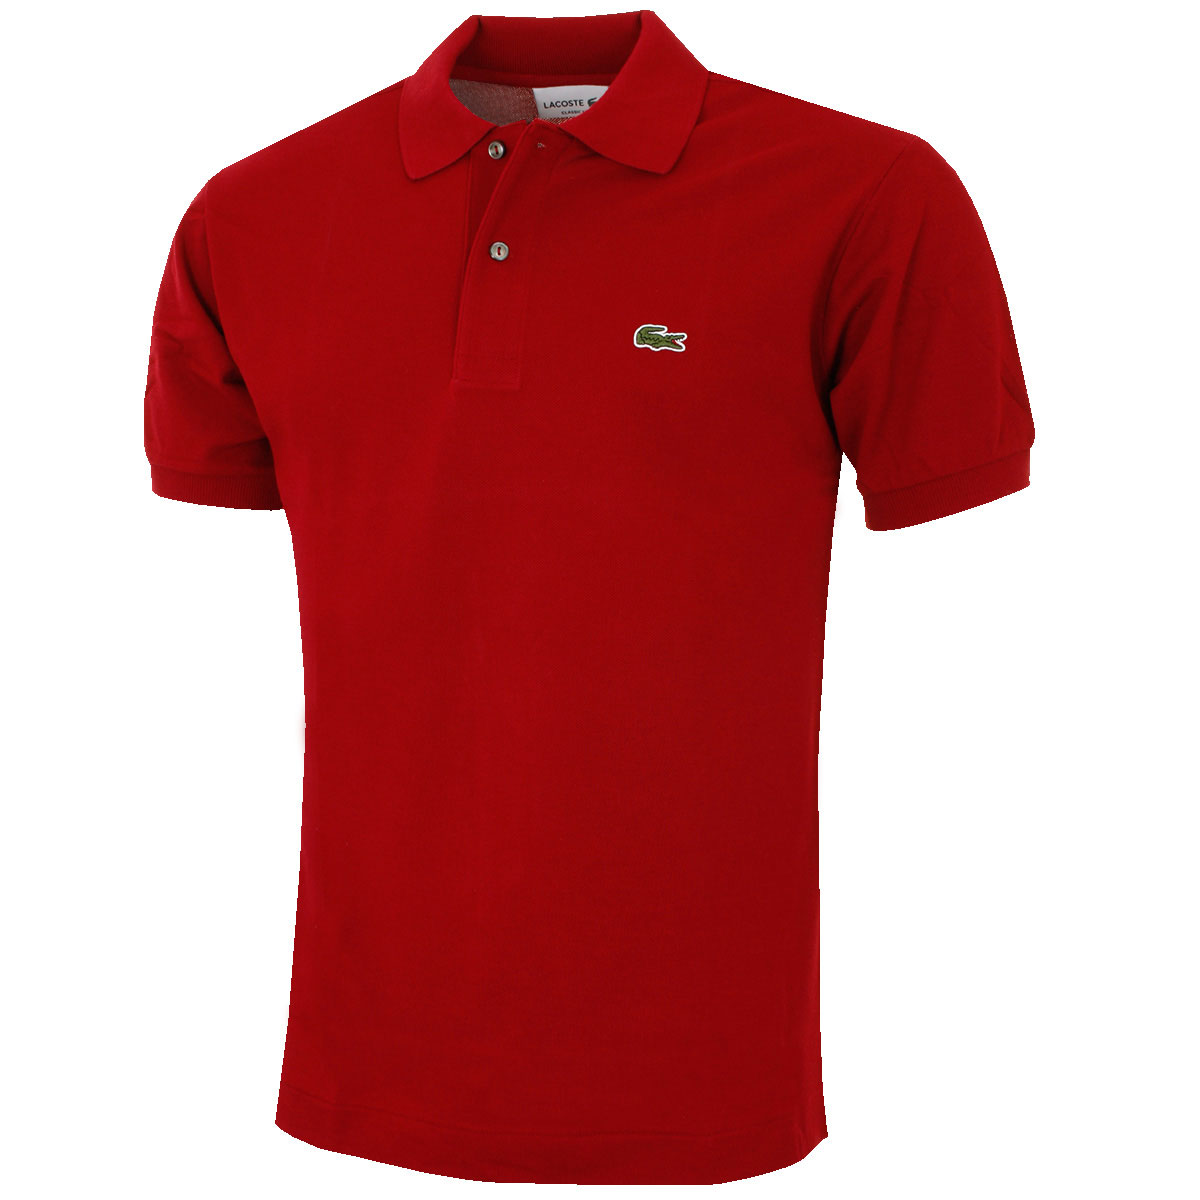 Lacoste 2017 mens classic cotton l1212 short sleeve polo shirt various colours ebay - Lacoste poloshirt weiay ...